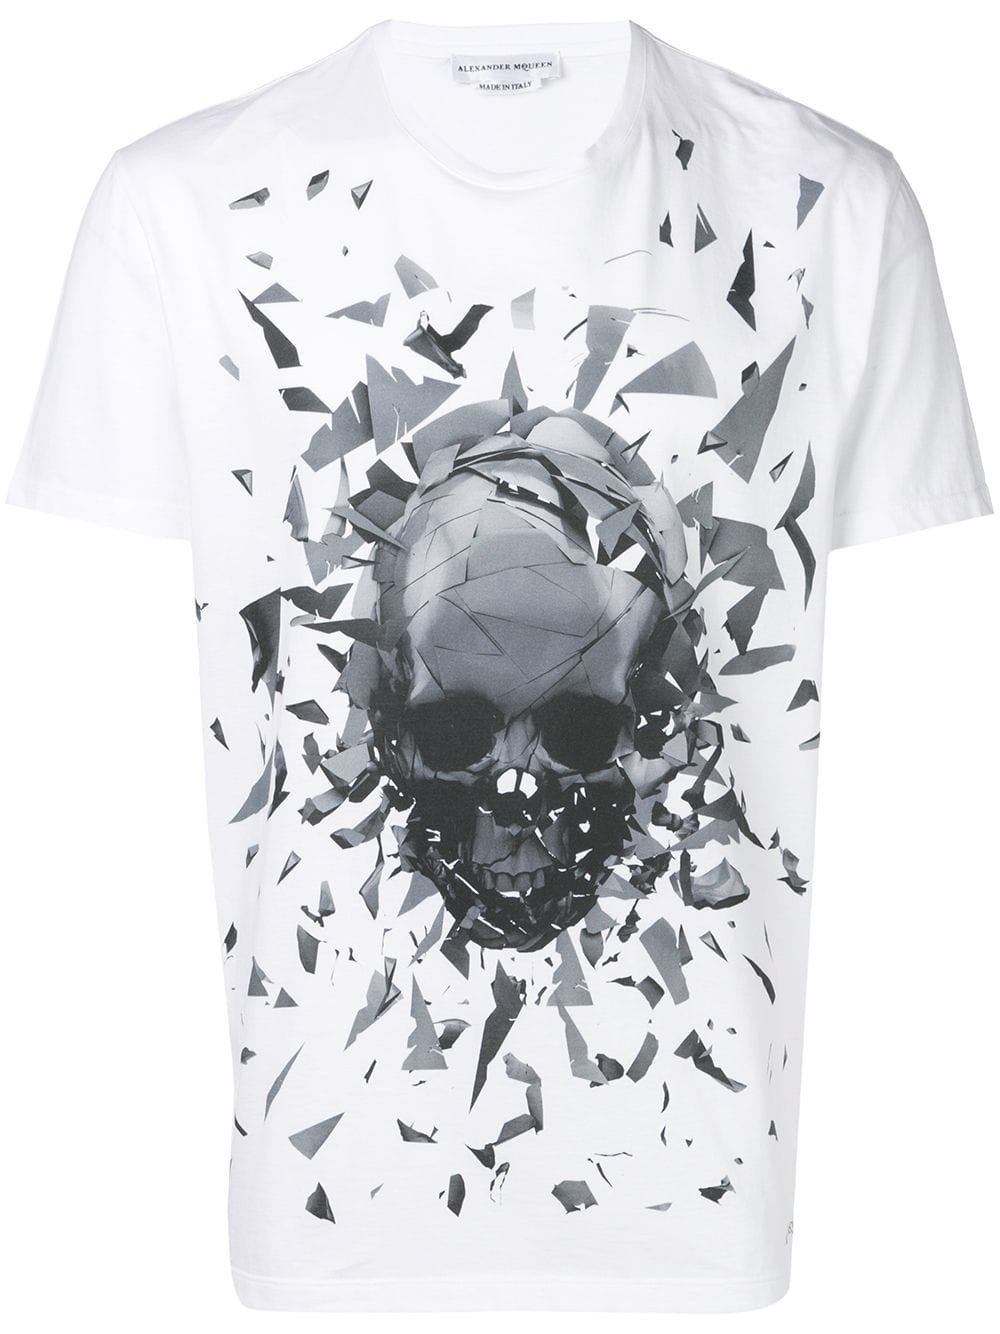 b5c92106 alexander mcqueen SKULL T-SHIRT available on montiboutique.com - 25909